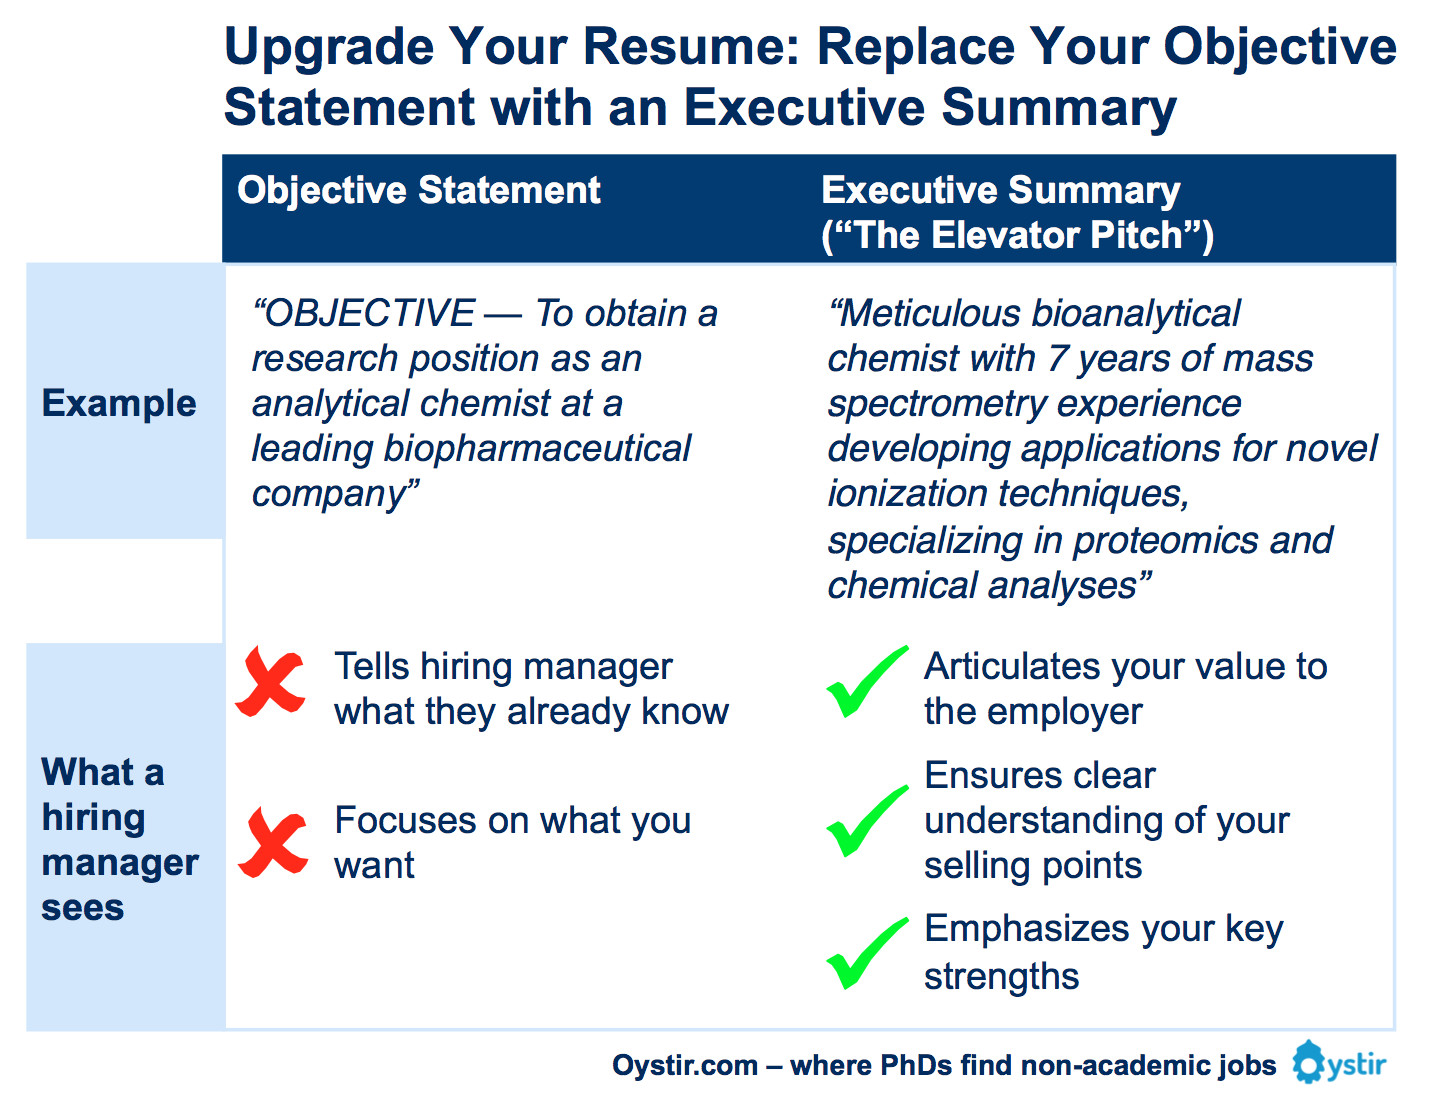 resume Resume With Executive Summary the most important thing on your resume executive summary major problem with objective statements is they tell hiring managers what already know if youre applying for a research s